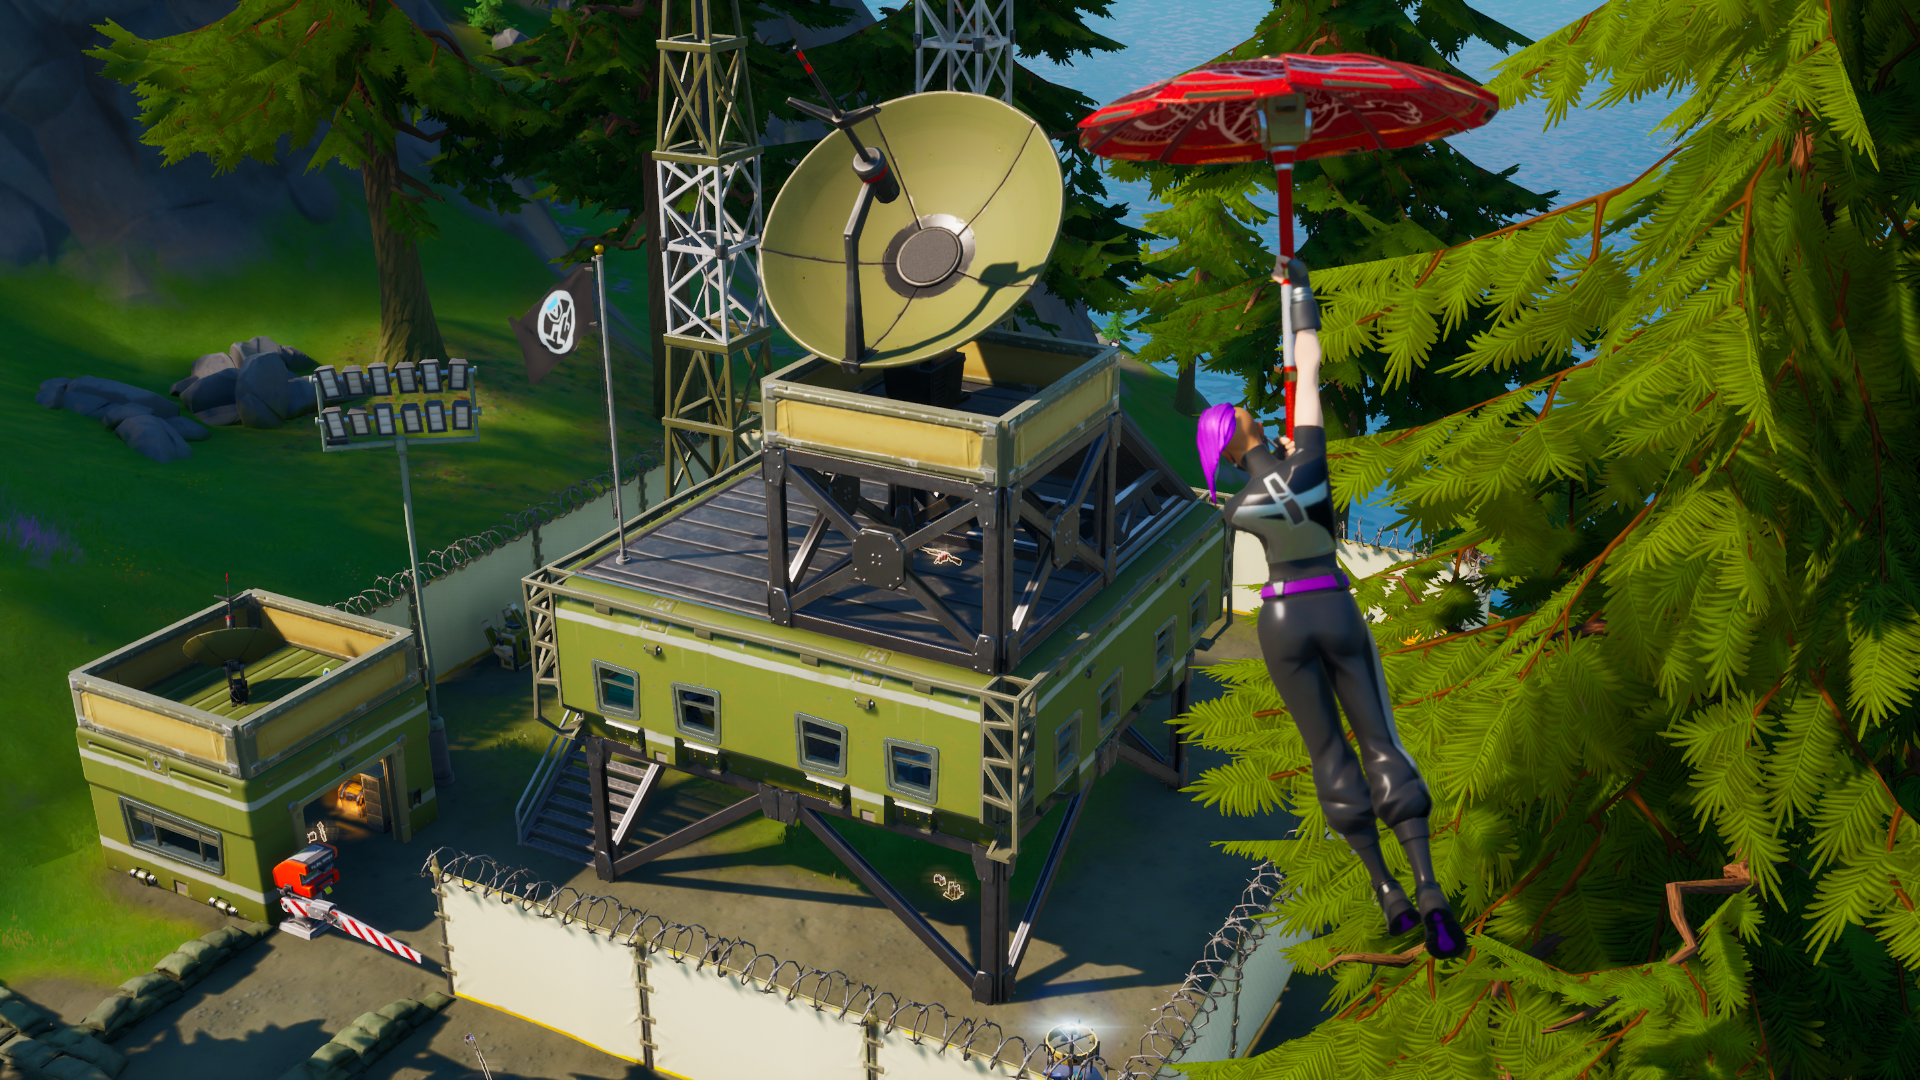 A Fortnite player in Chapter 2 glides in to an E.G.O. outpost